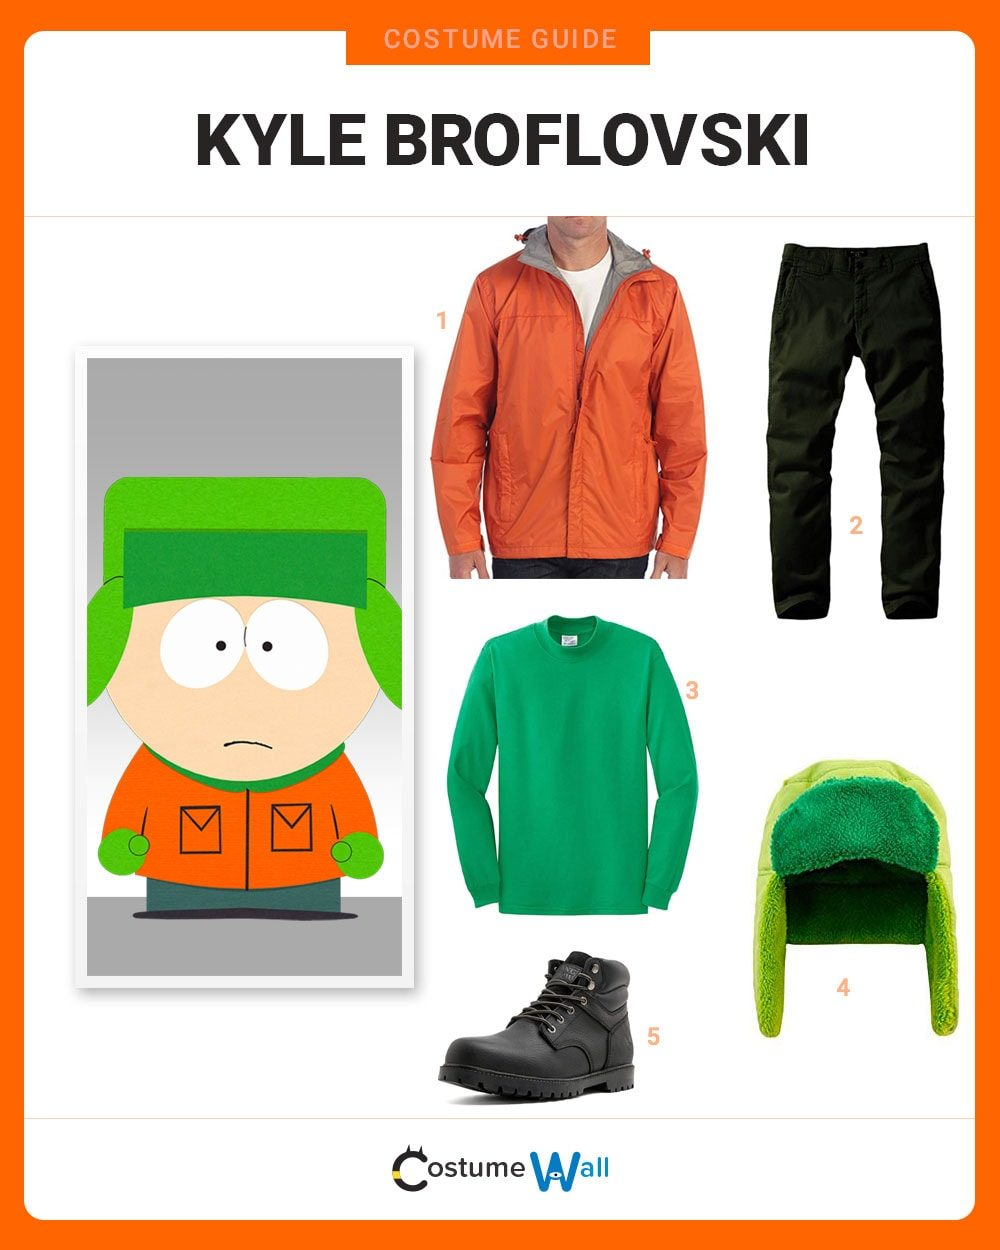 dress like kyle broflovski costume halloween and cosplay guides